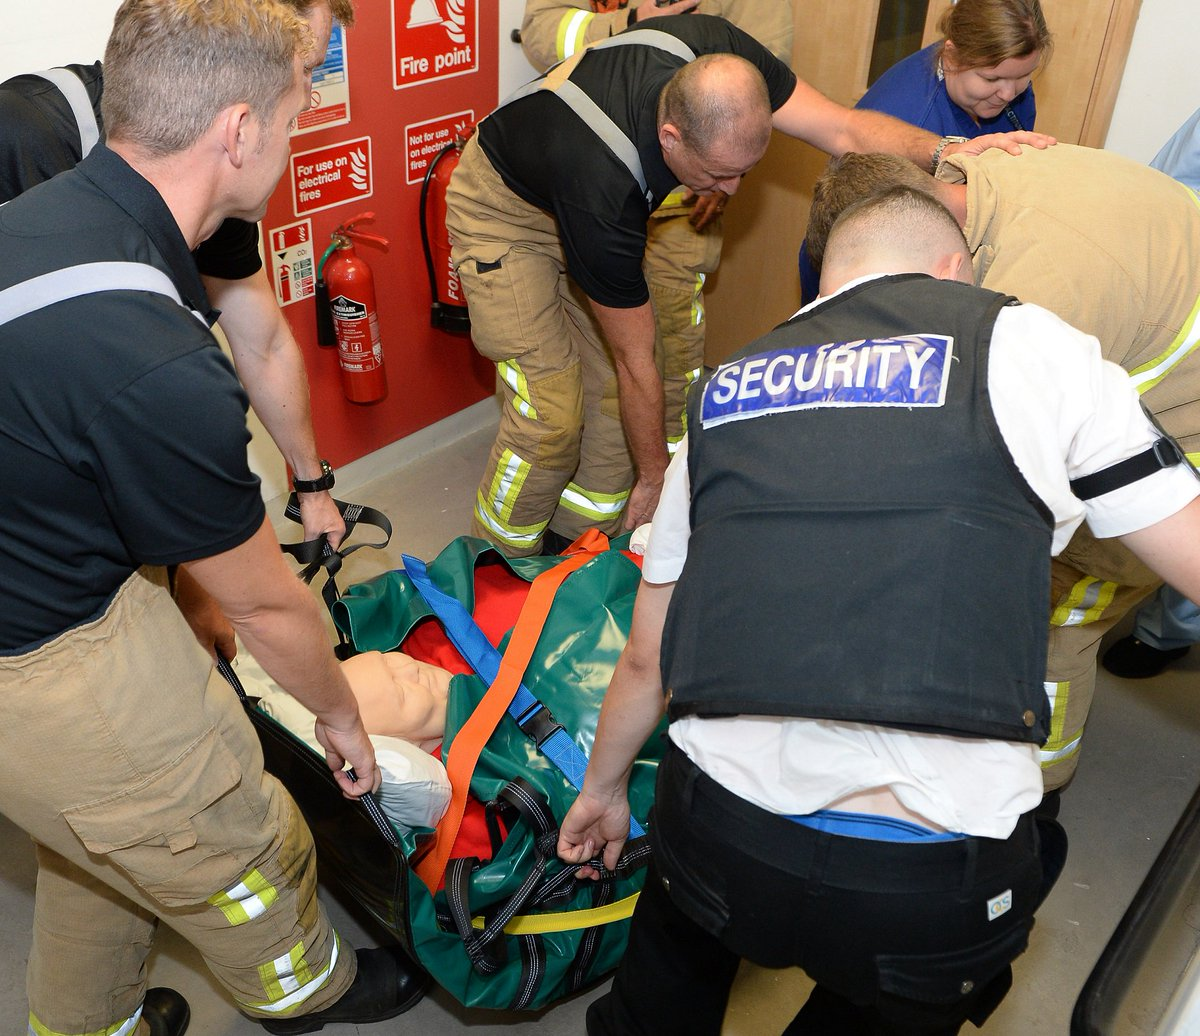 #Rescue or handling #Training for scenarios involving people suffering from #Obesity? See how a Bariquin can help youtu.be/a-MnrHkrlsE #Fire #Paramedic #Ambulance #NHS #Nursing #HART #Firefighters #SAR #ISAR #Hospital #Care #BariatricTraining #Bariatric #PatientSafety #Dignity